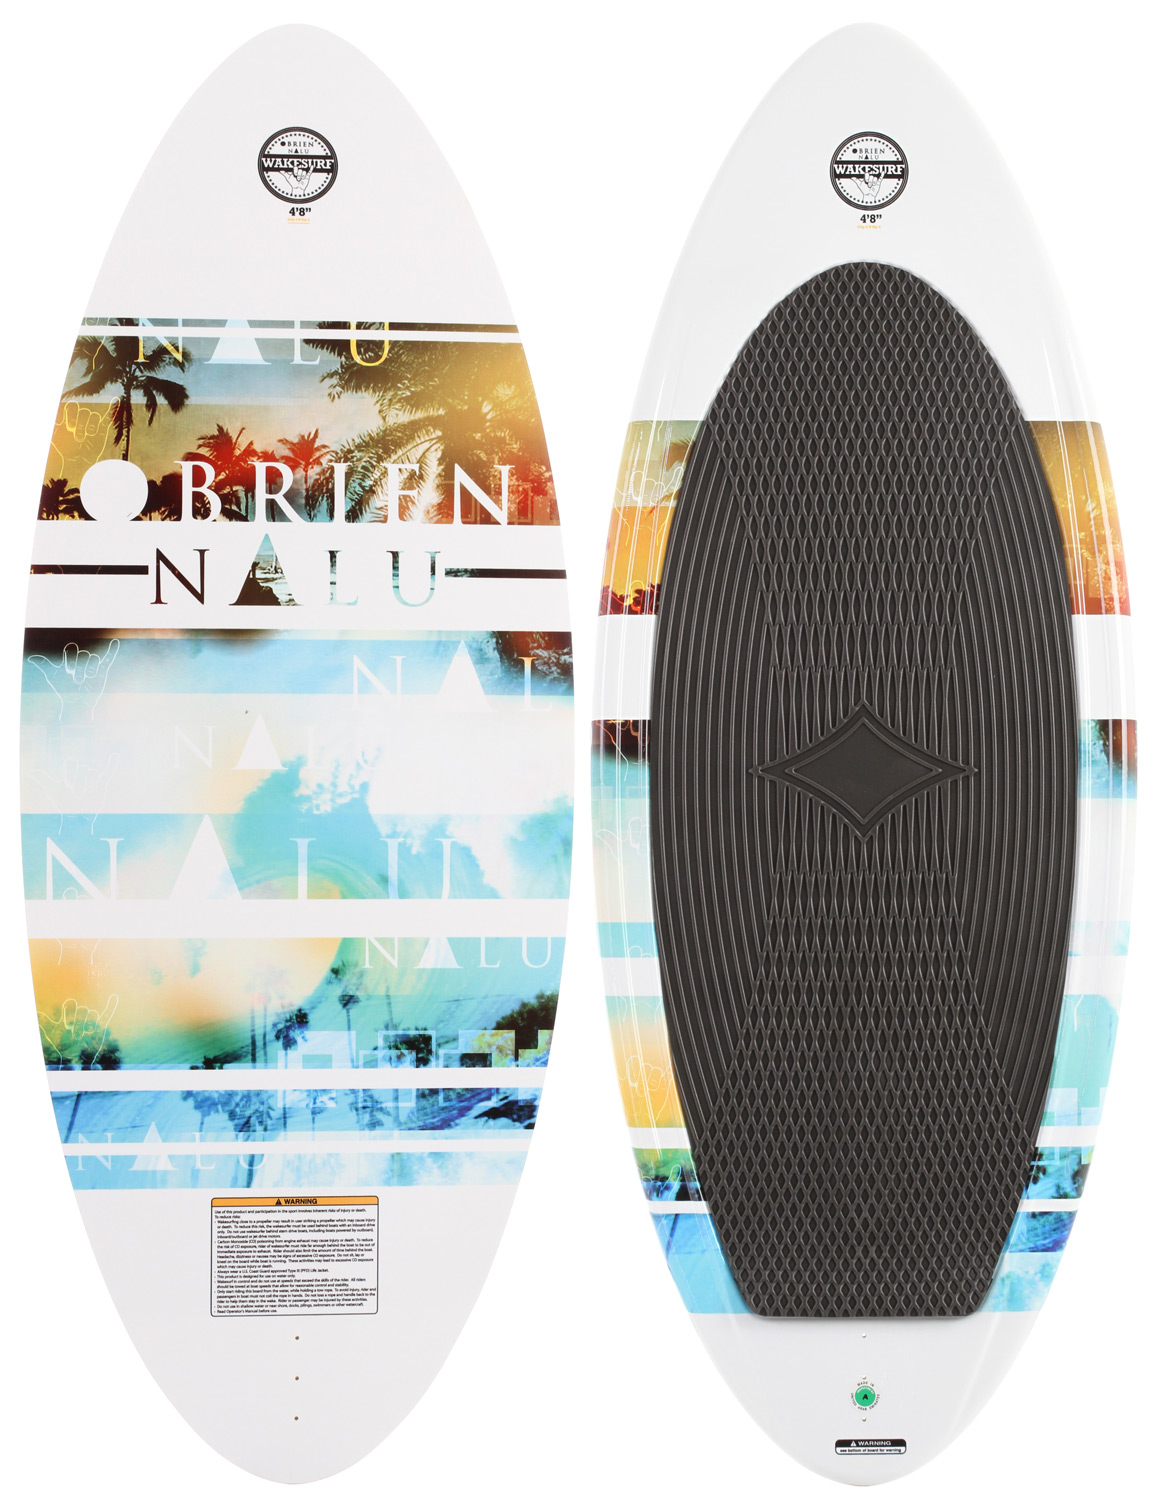 "Wake The Nalu Wake Surfer features an all new rocker profile, pushing the flat spot further forward and creating a board that excels on wakes large, small, and everywhere in between. Featuring a completely flat bottom and a single fin setup, the Nalu carries speed up the face of the wave, waiting for your latest move. Whether you're just cruising behind the boat, or ripping like a pro - the Nalu delivers.Key Features of the O'Brien Nalu Wakesurfer: Length (in): 4'8"", 5'4"" Tip Width (cm): N/A Mid Width (cm): 51.8 (4'8""), 54.6 (5'4"") Rocker (cm): 2.1 Skim (4'8""), 2.3 Skim (5'4"") - $199.95"